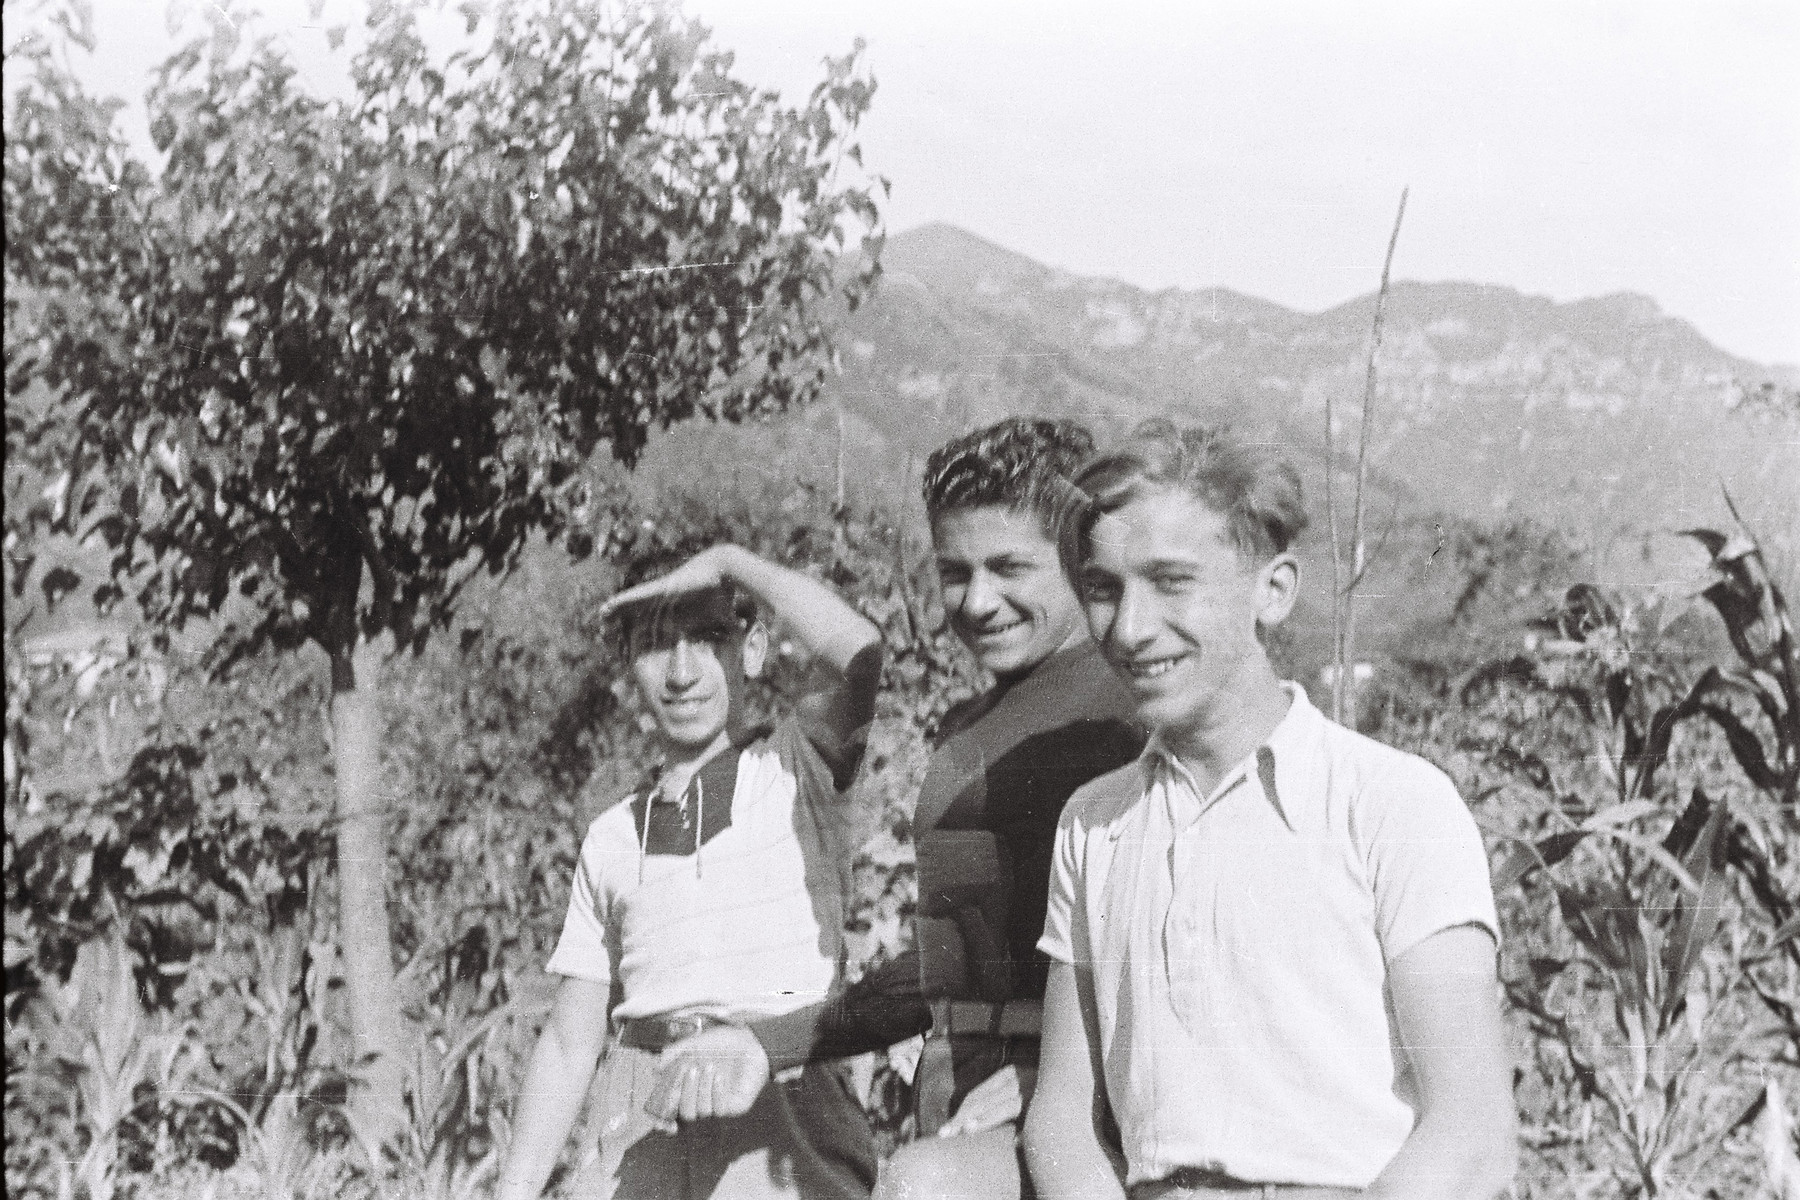 Cesare Vitale and two friends pose in a Zionist Hachshara near Milan.